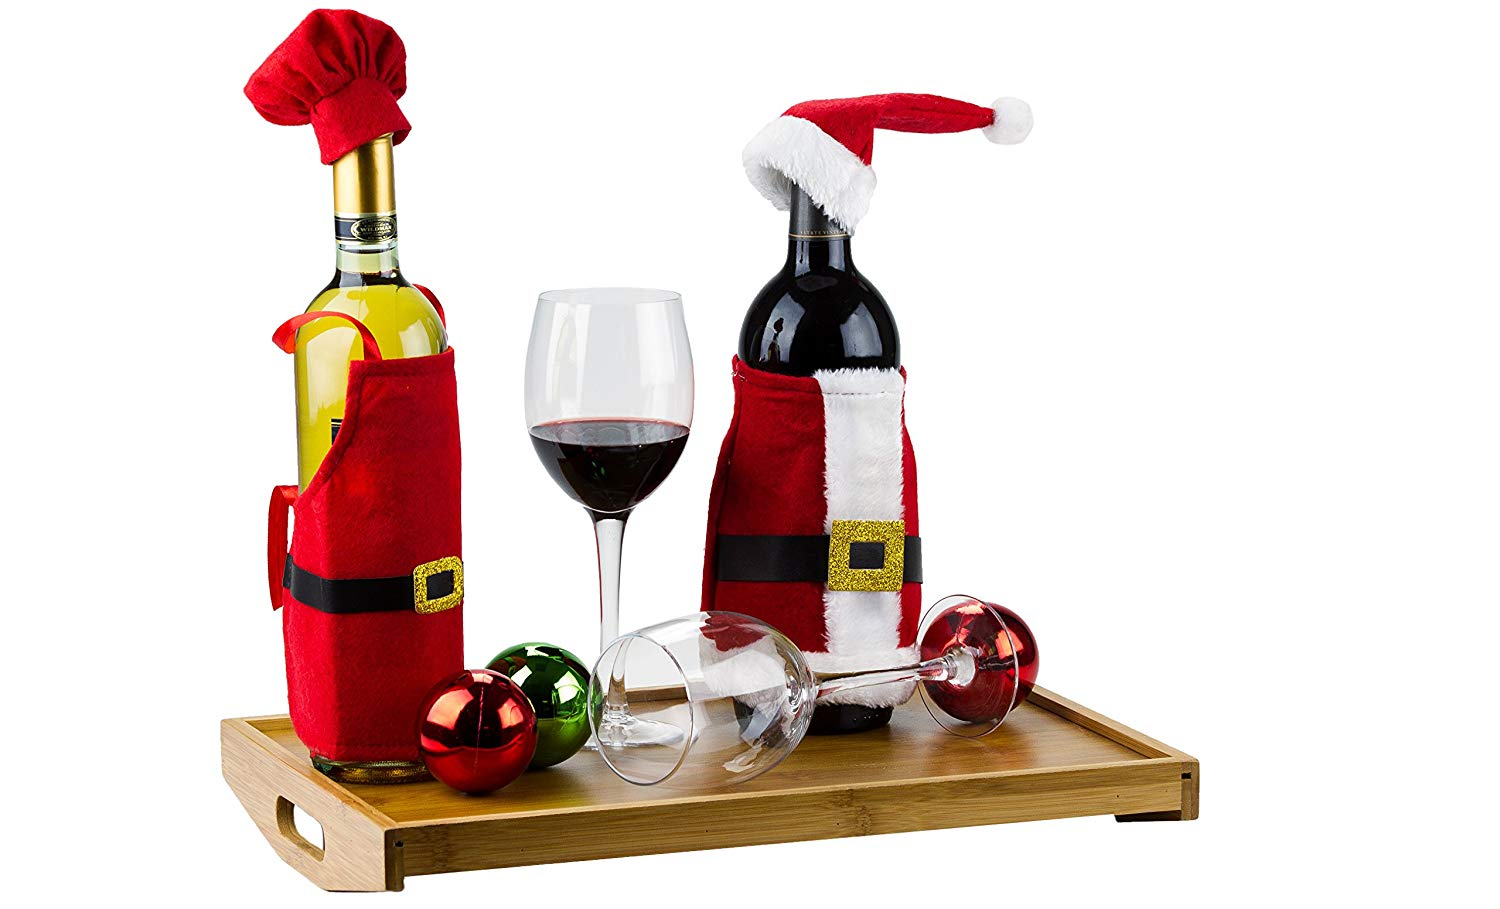 4 Pcs Christmas Wine Bottle Covers Set - Santa and Little Helpers Christmas Wine Decorations